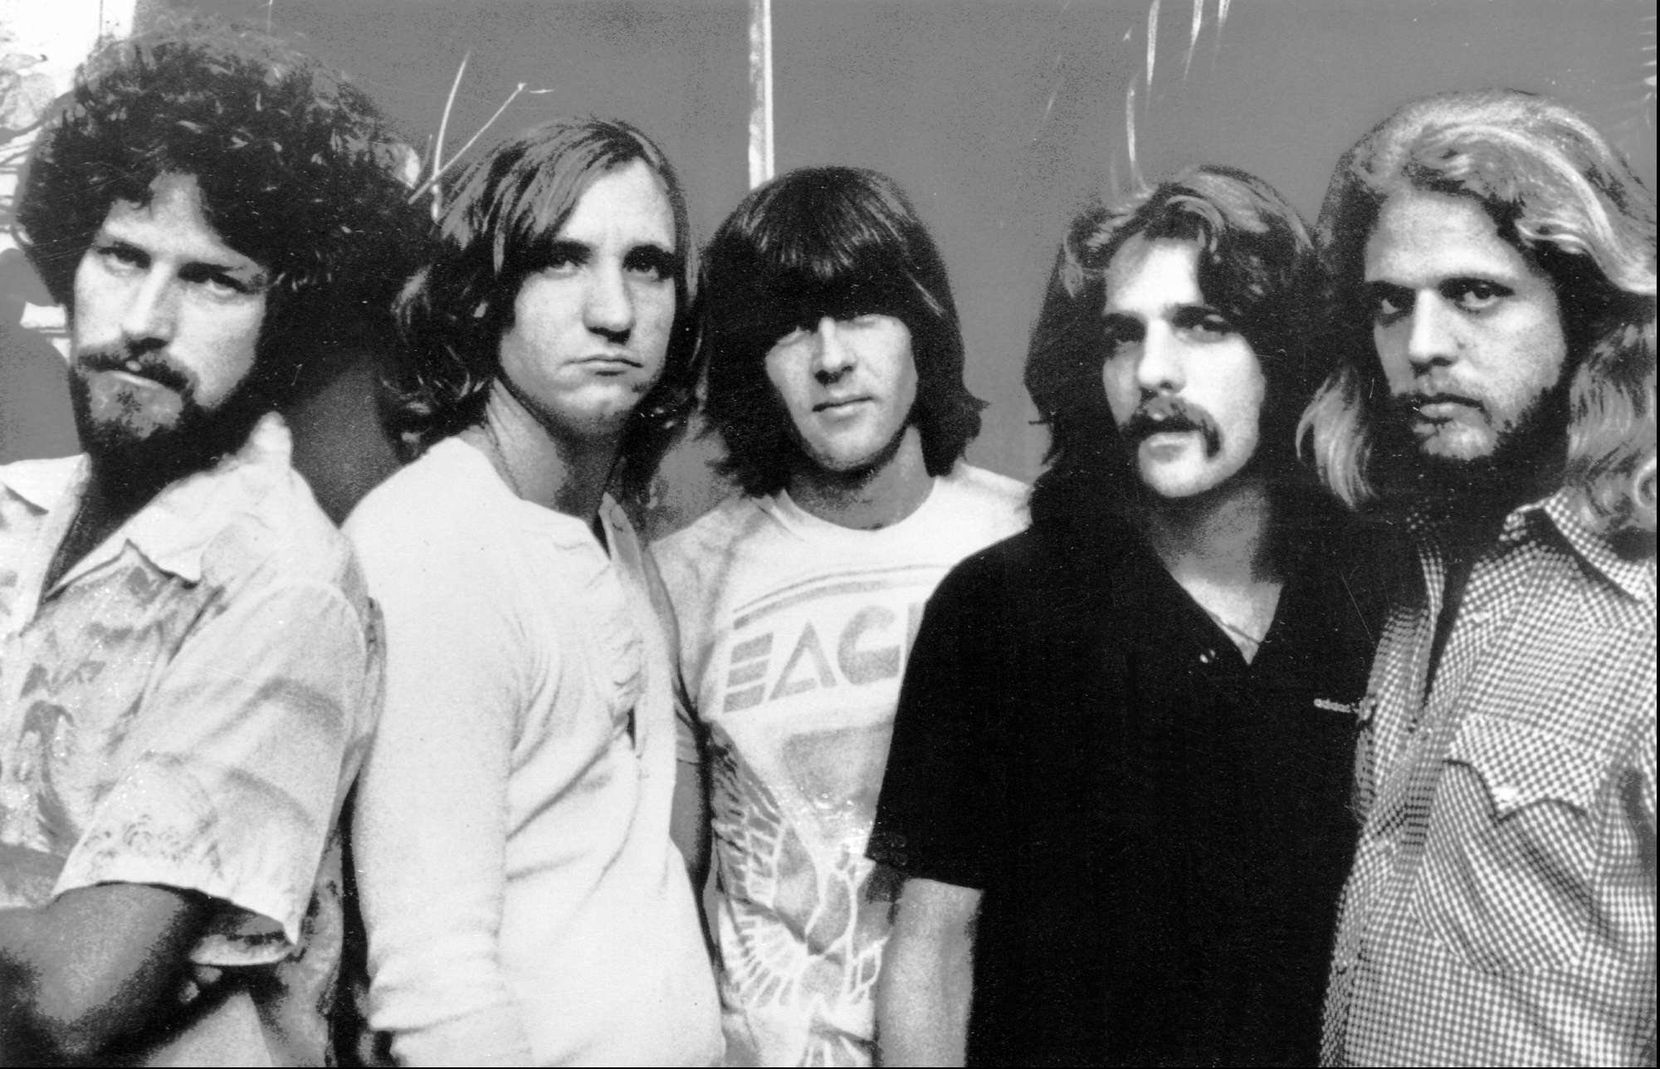 Henley (far left) and the Eagles in 1977